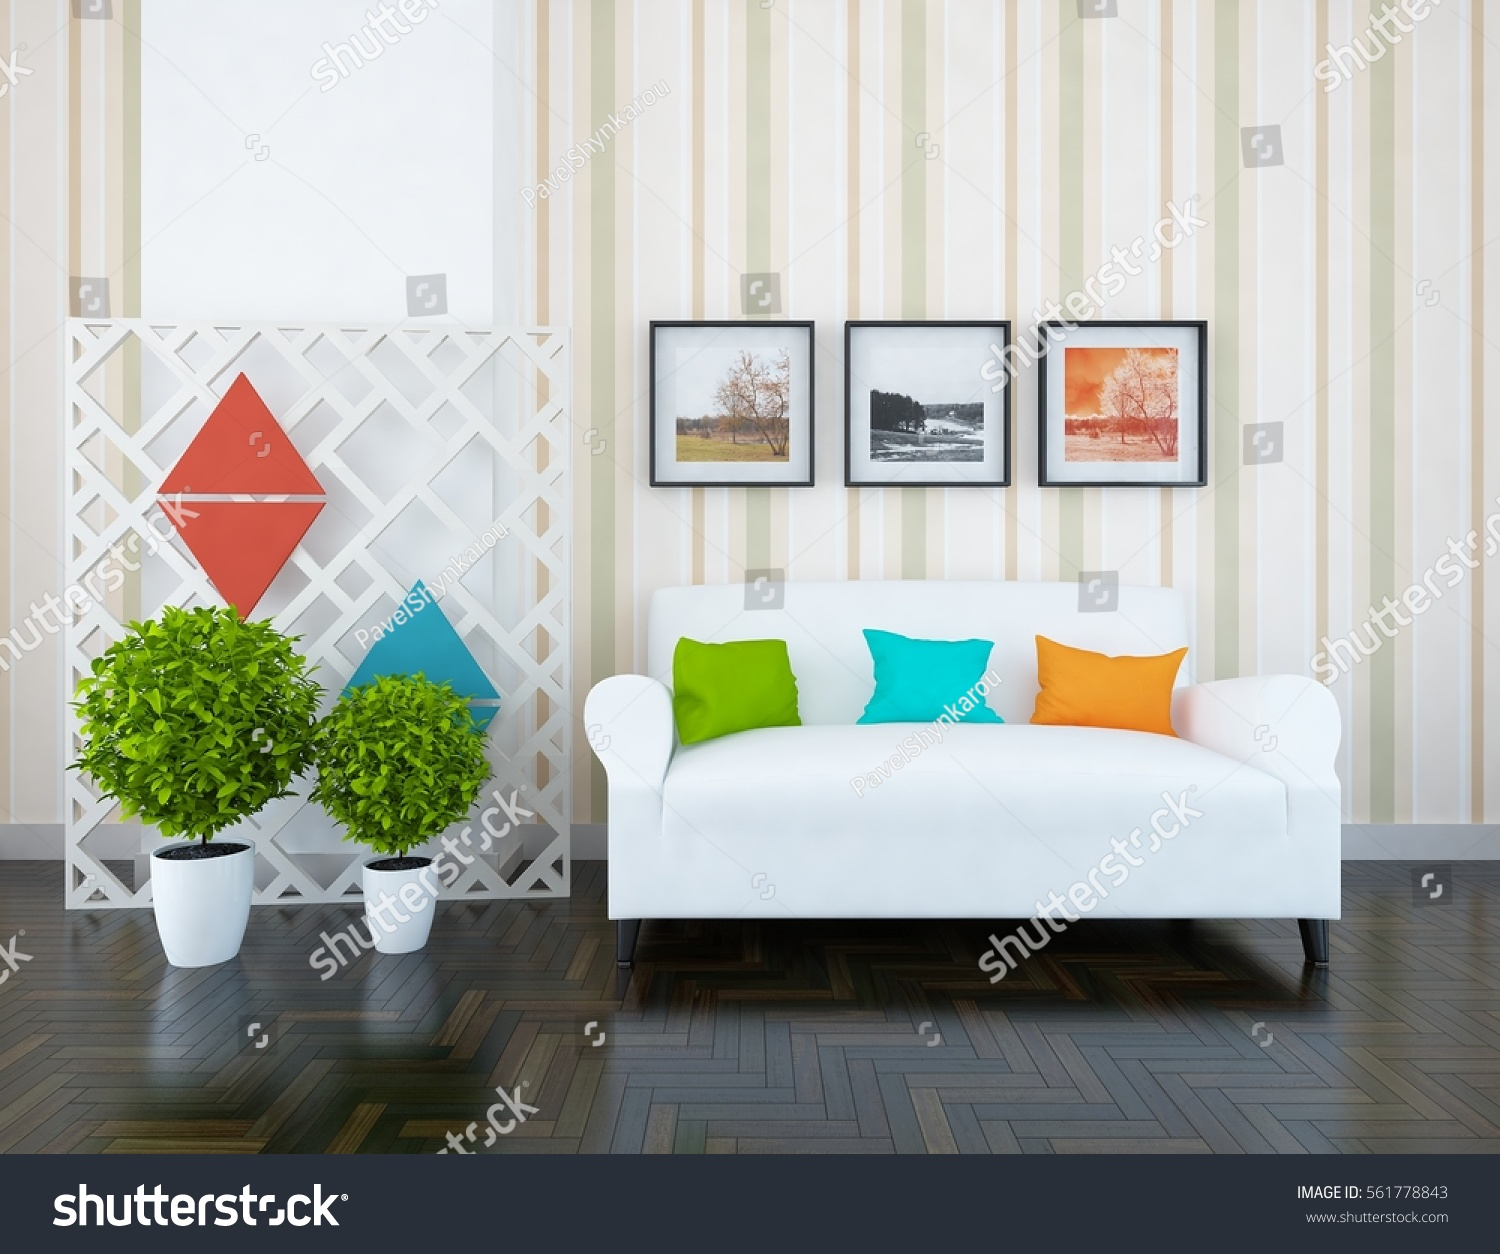 sofa pictures living room. White room with sofa  Living interior Scandinavian design 3d illustration Room Sofa Interior Stock Illustration 561778843